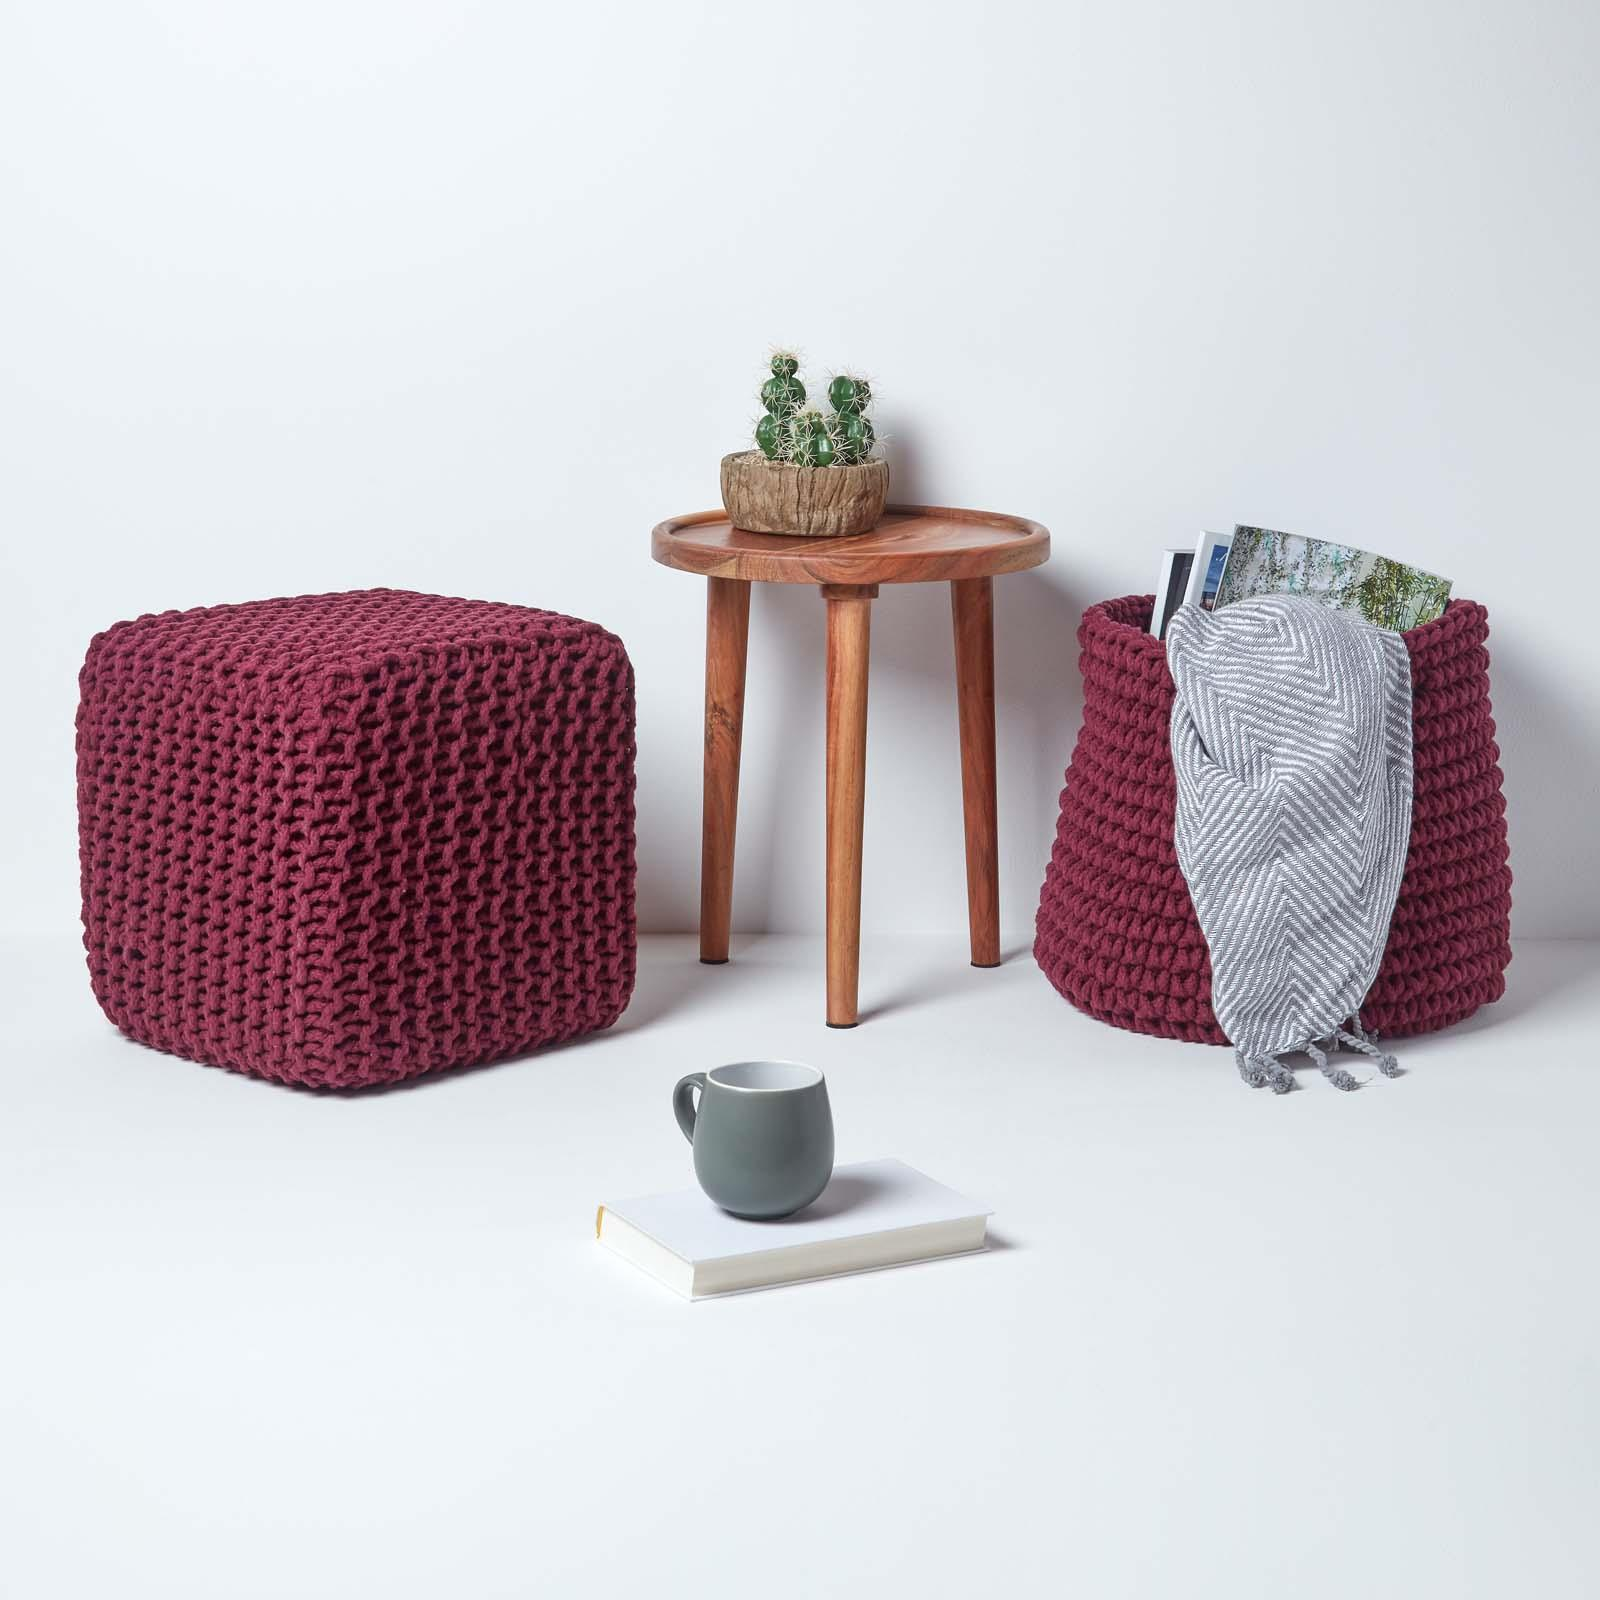 Hand-Knitted-100-Cotton-Pouffes-Round-Sphere-Or-Cube-Square-Chunky-Footstools thumbnail 162